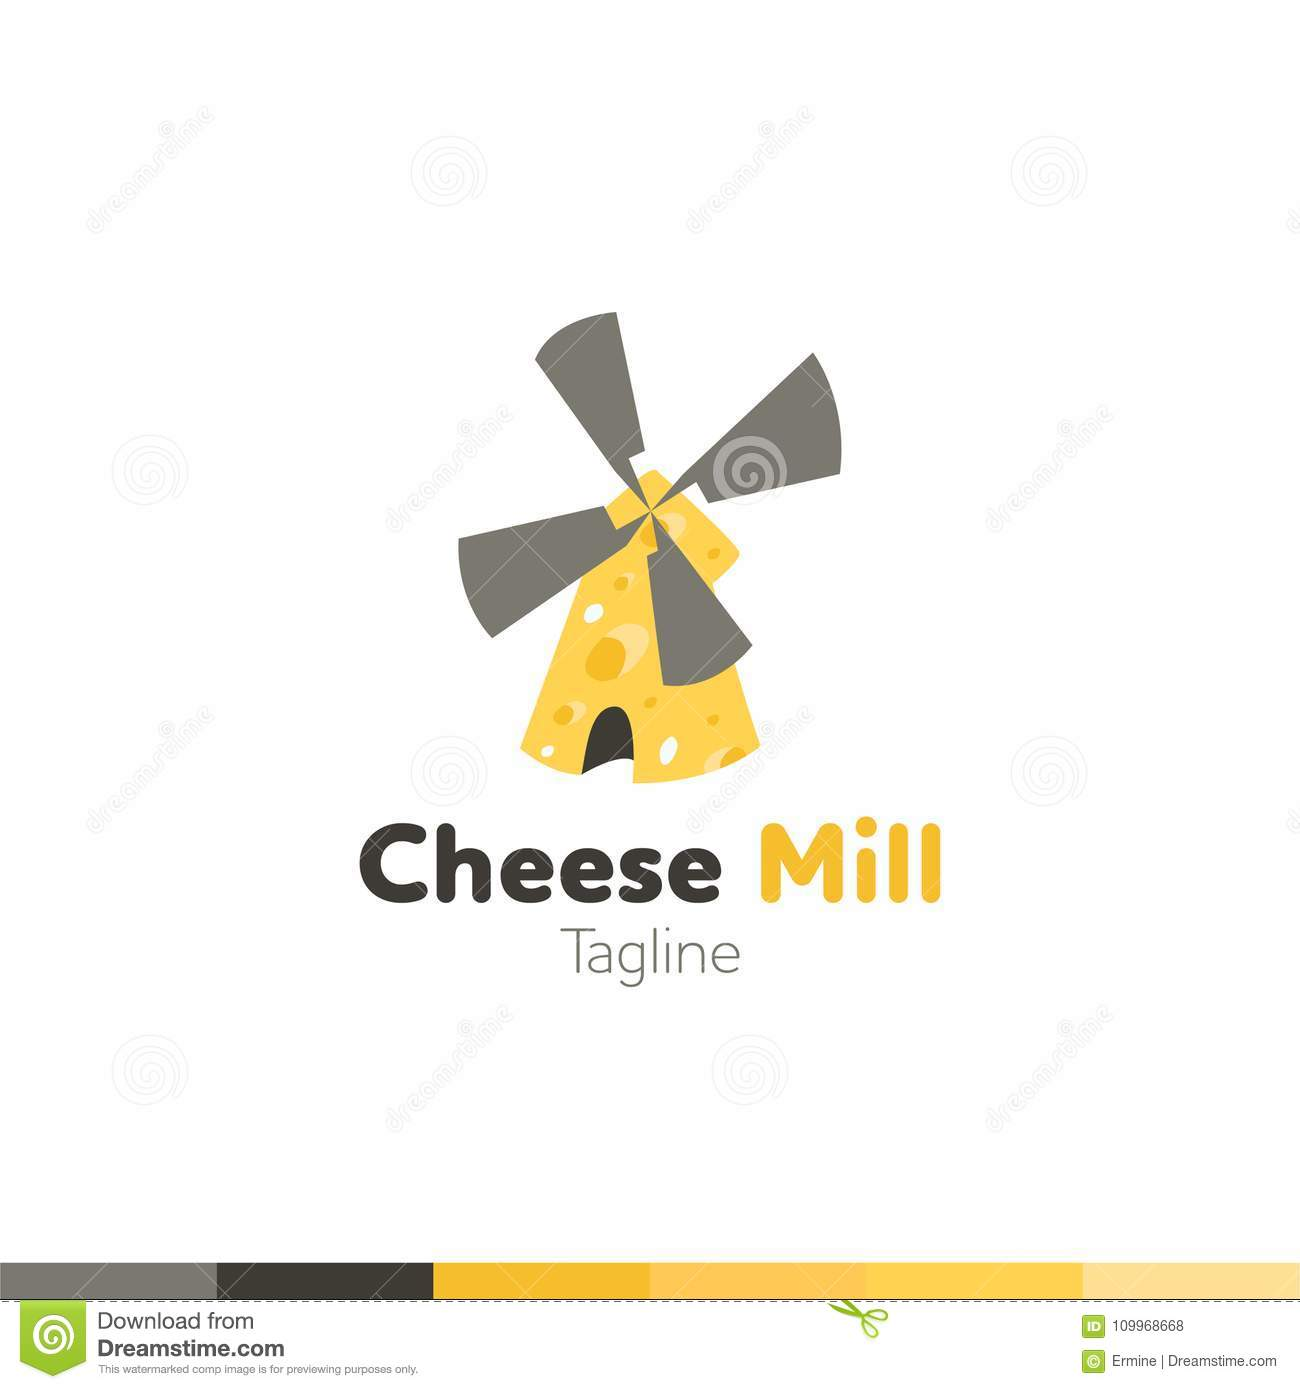 Cheese mill logo restaurant logo food and cooking logo vector cheese mill logo restaurant logo food and cooking logo vector maxwellsz